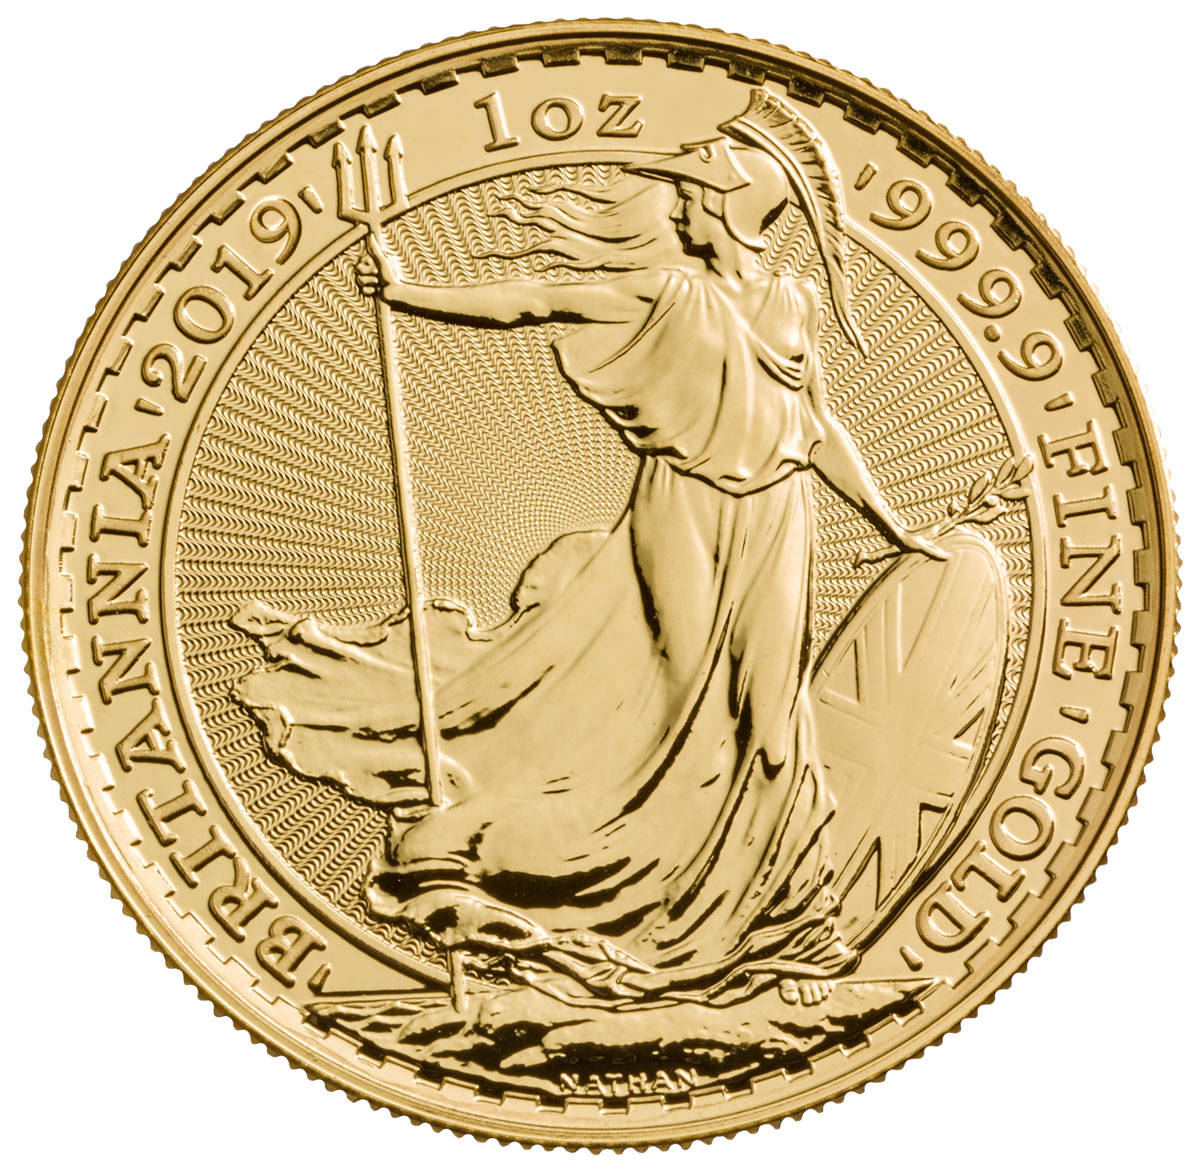 2019 Great Britain 1 oz Gold Britannia £100 Coin GEM BU